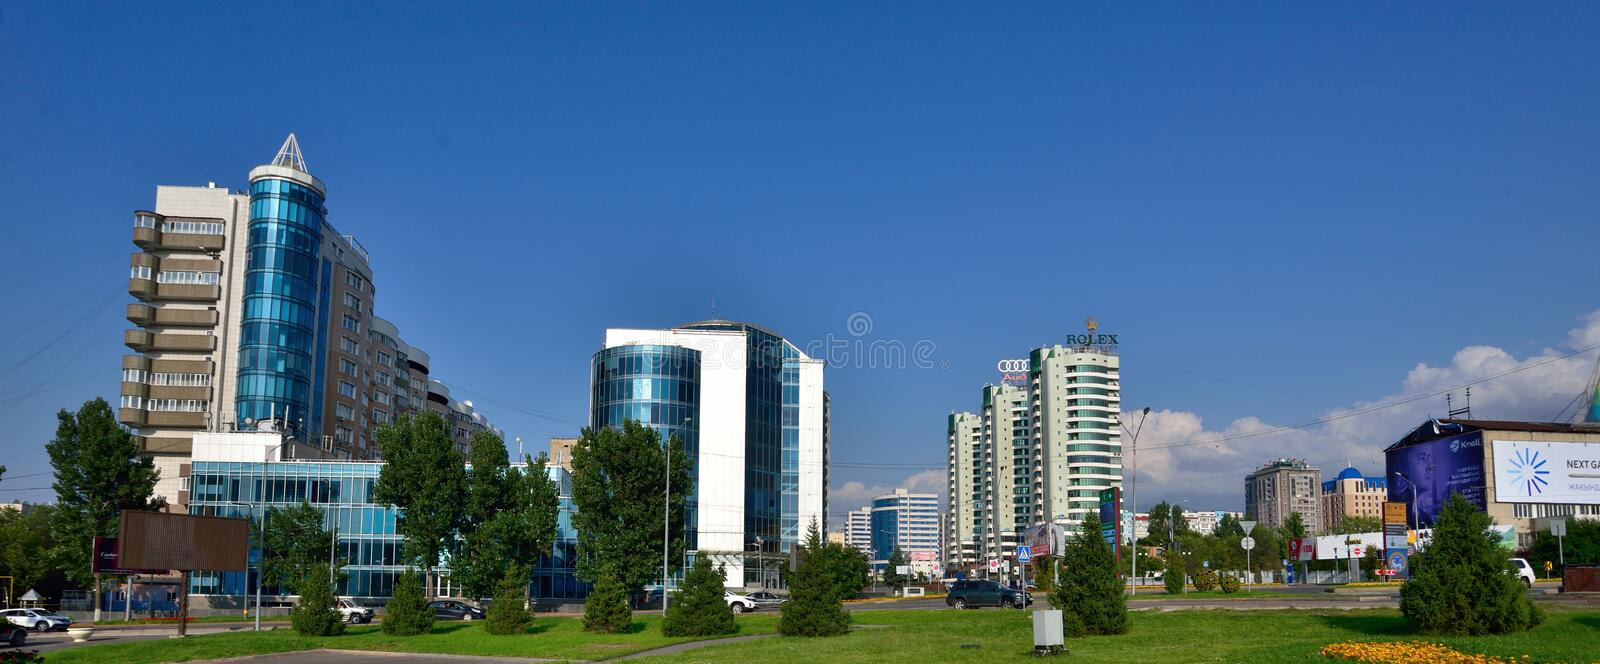 Almaty city buildings on summer day with flowers and fontain in front stock images